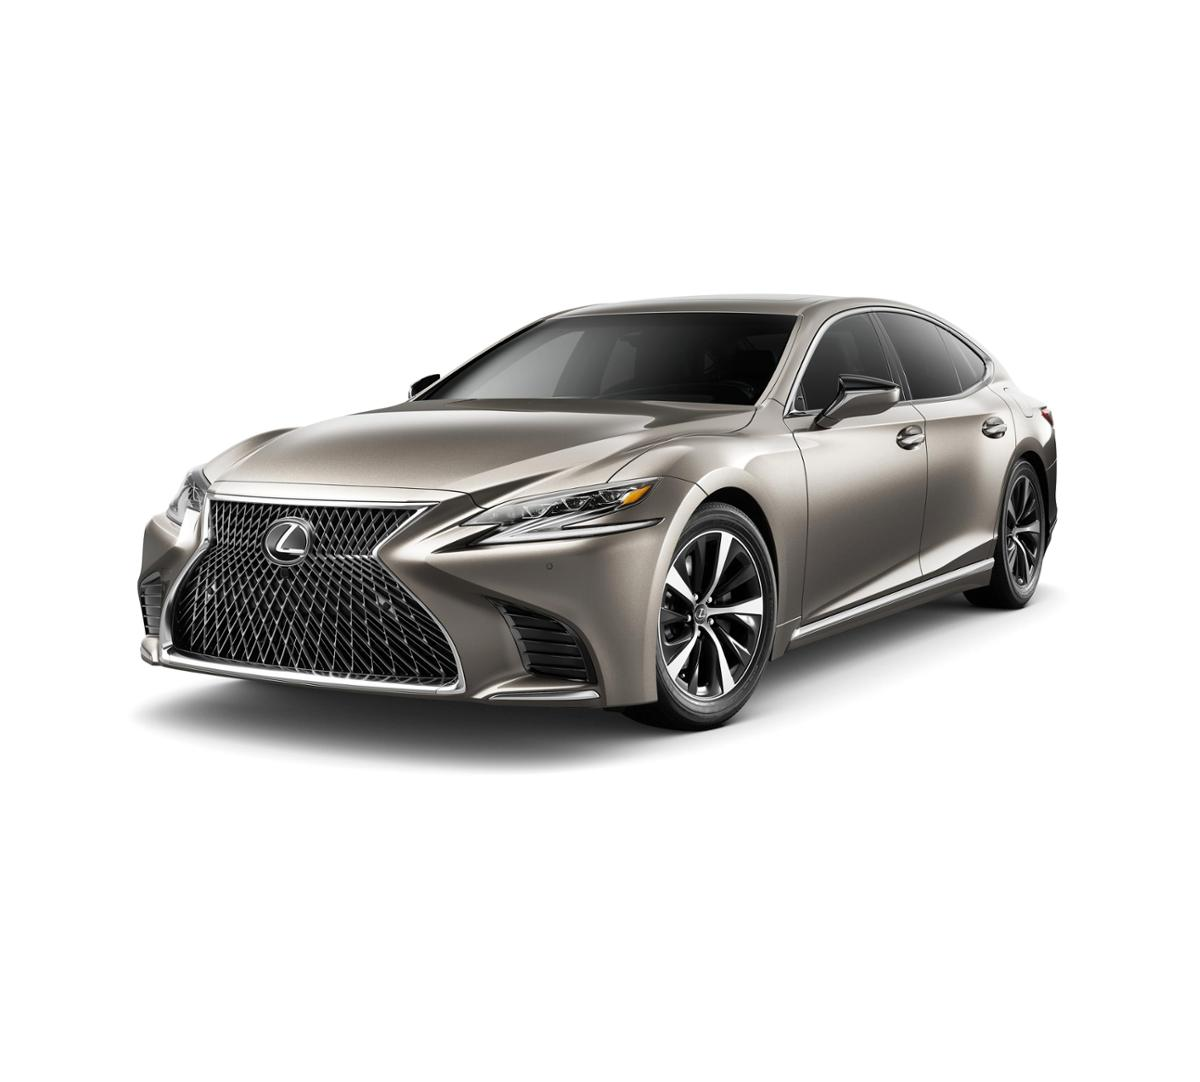 2019 Lexus LS 500 Vehicle Photo in Evansville, IN 47715